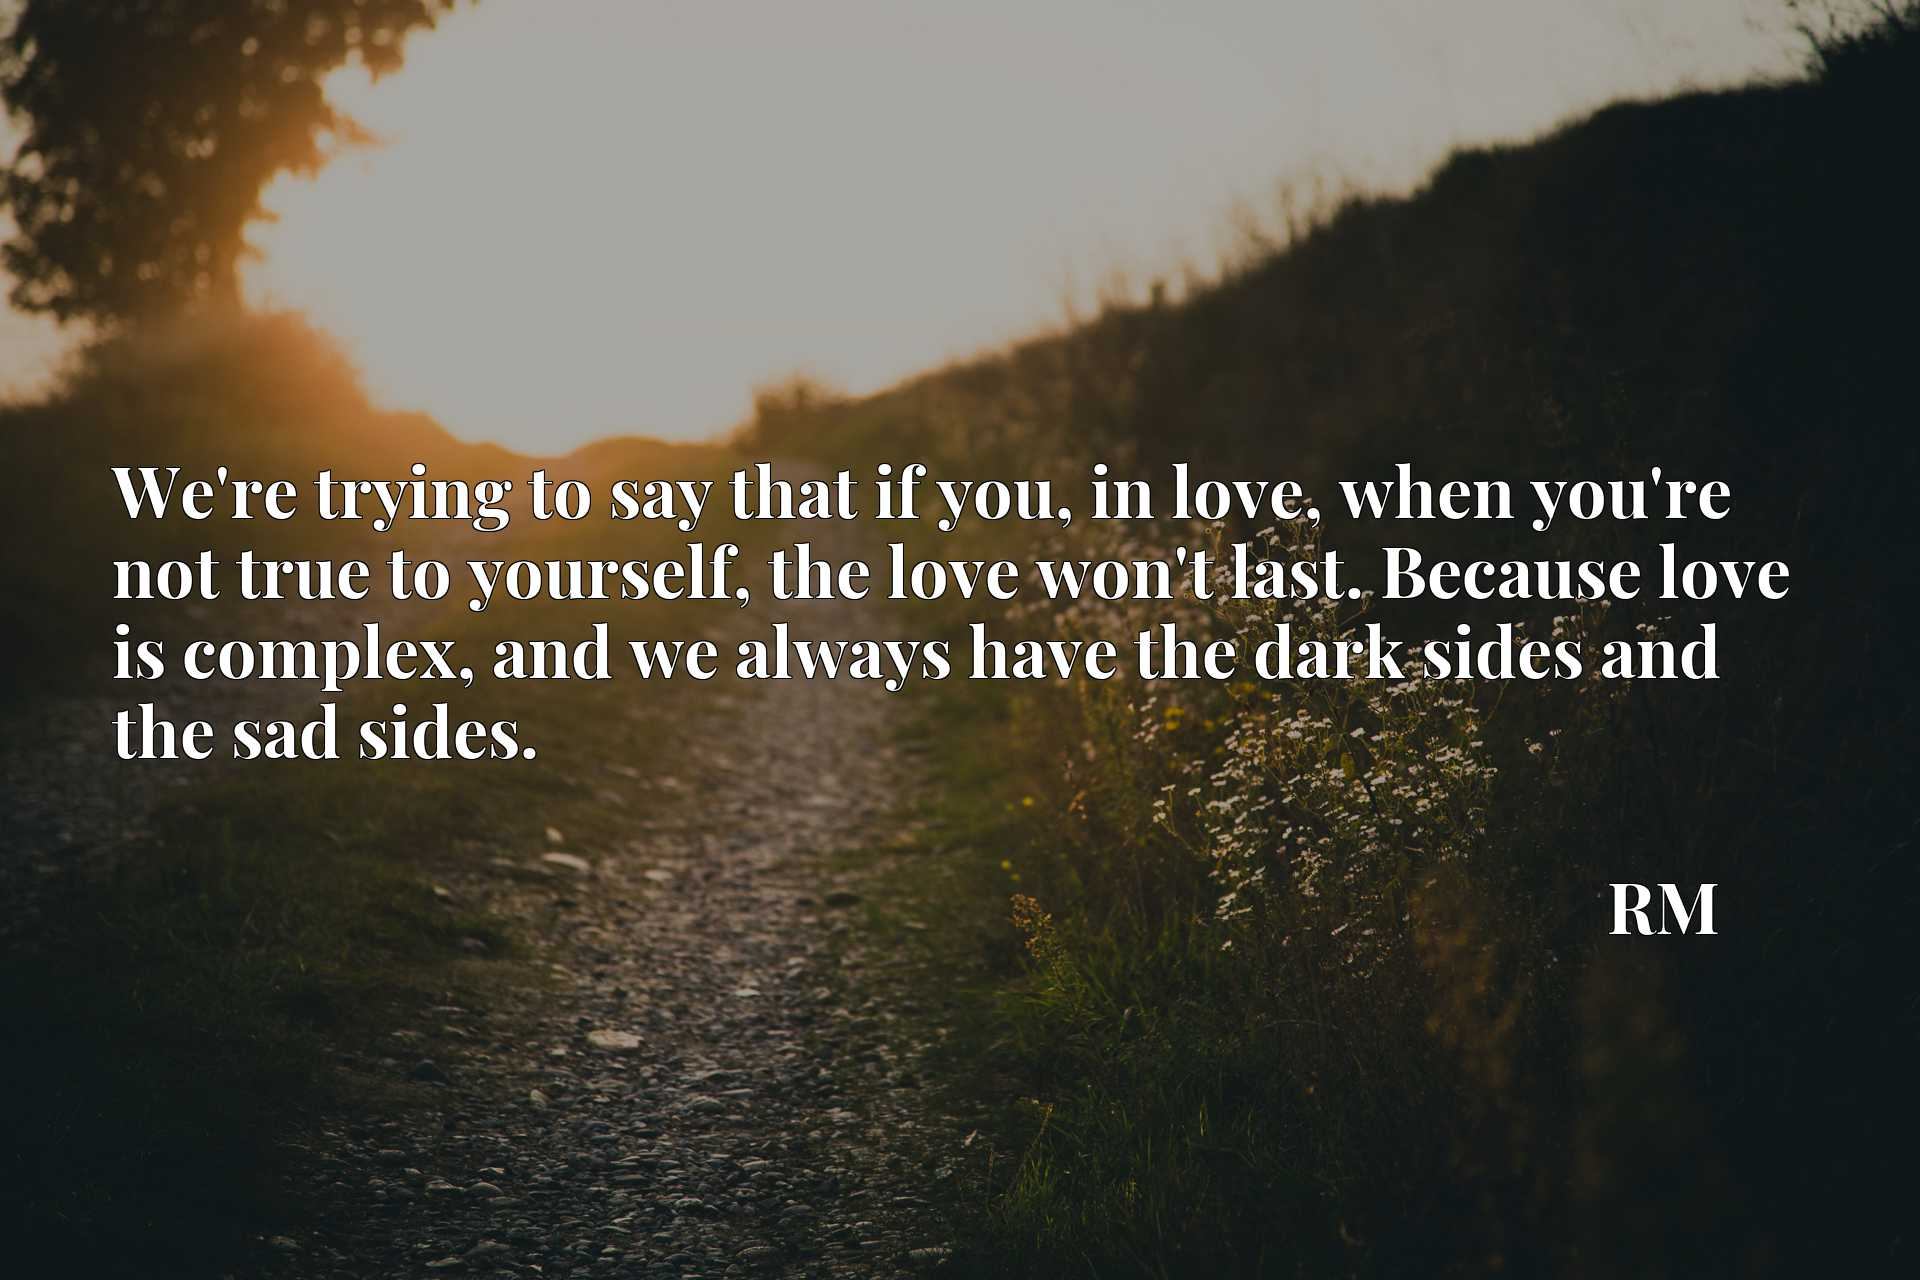 We're trying to say that if you, in love, when you're not true to yourself, the love won't last. Because love is complex, and we always have the dark sides and the sad sides.